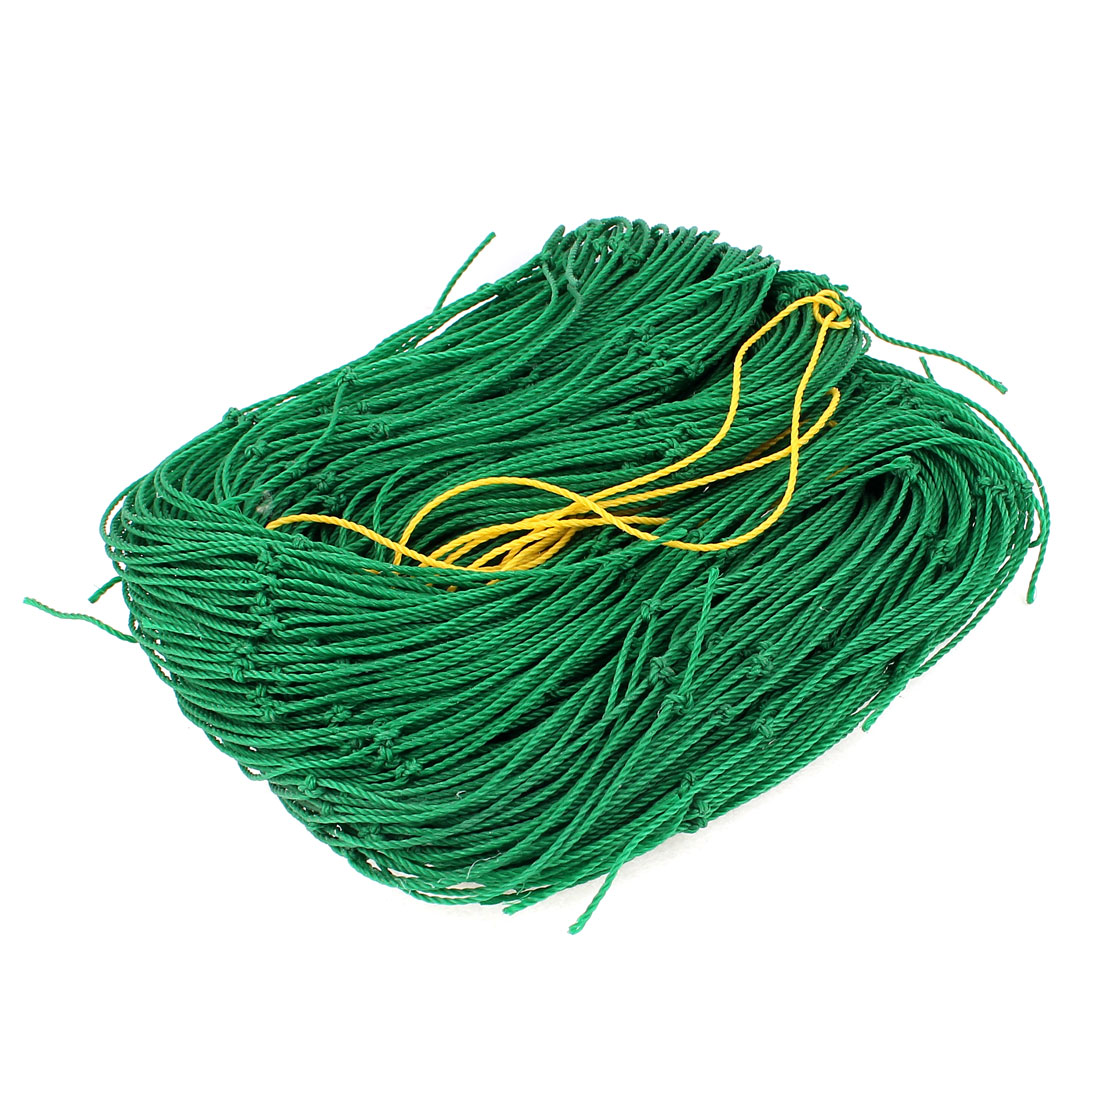 1.8m x 3.6m Green Nylon Hanging Gardening Climbing Plant Support Nets